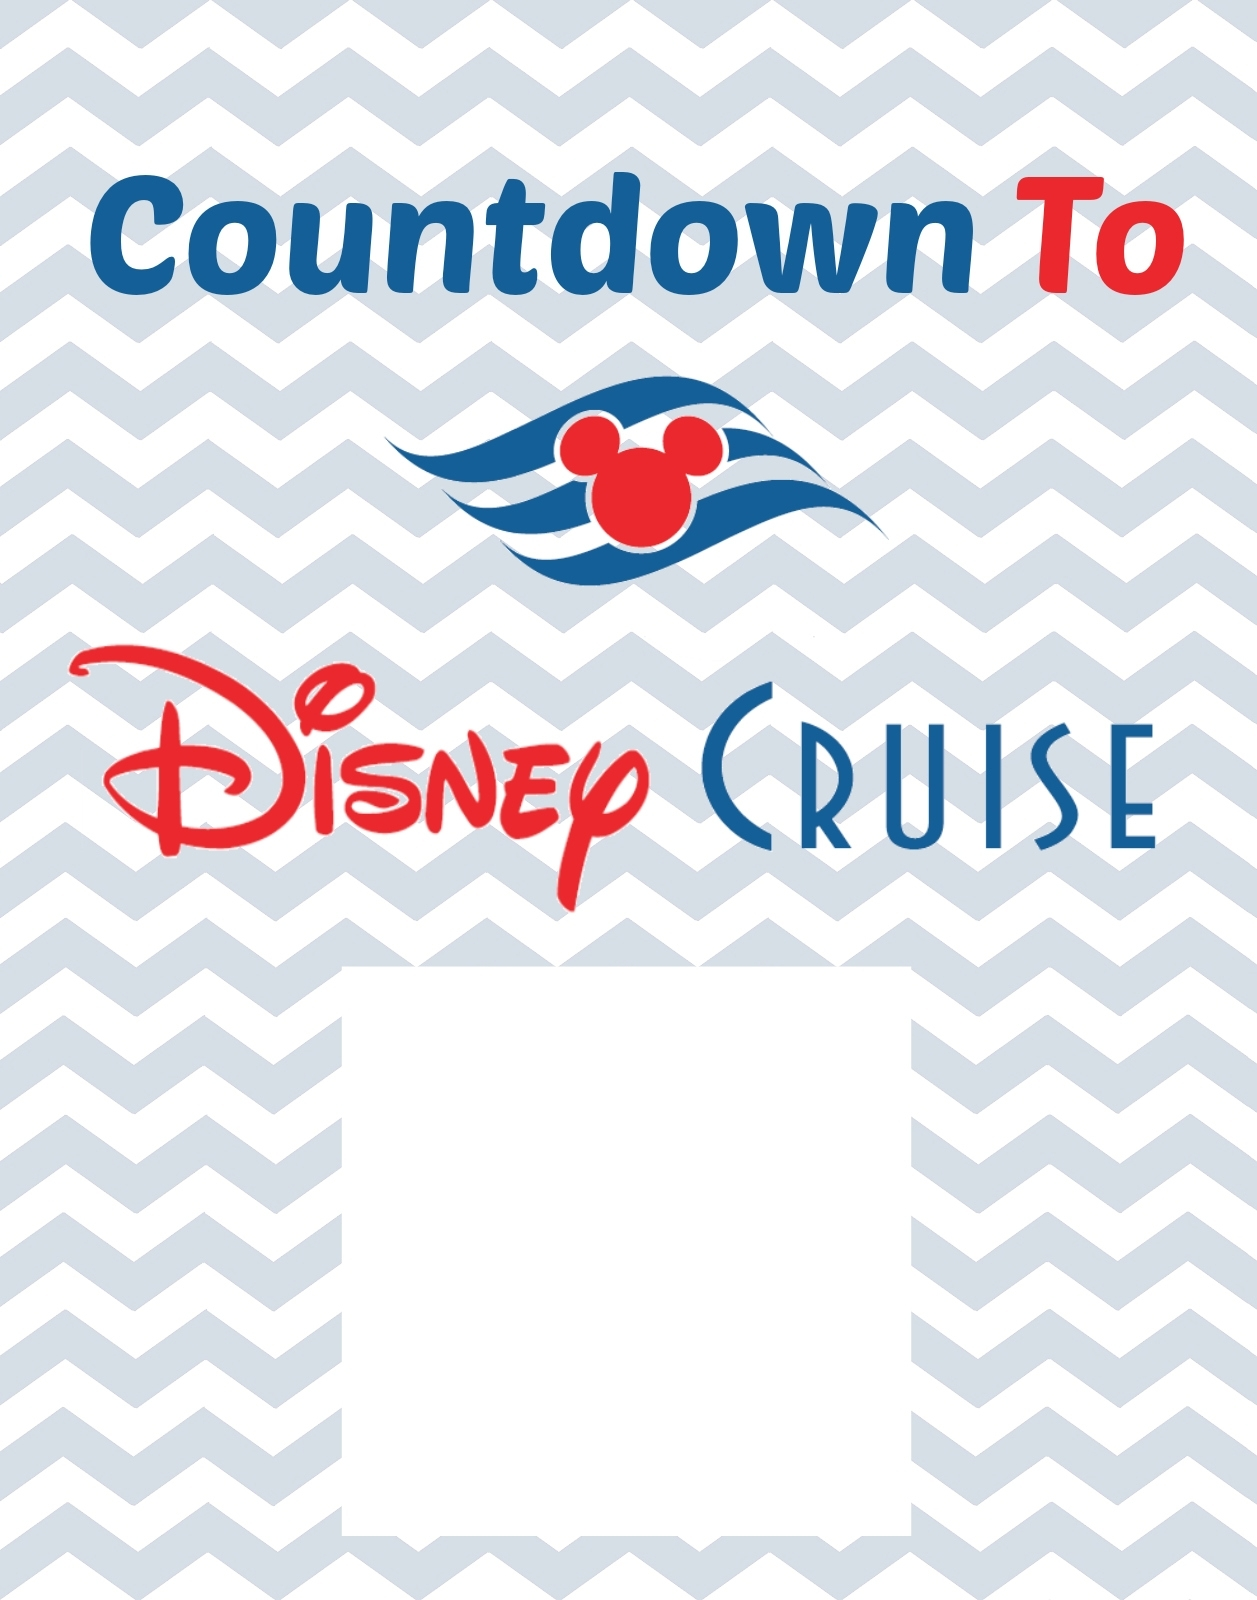 Countdown To Disney Cruise Free Printable - Thesuburbanmom regarding Disney Cruise Countdown Calendar Out Of Paper